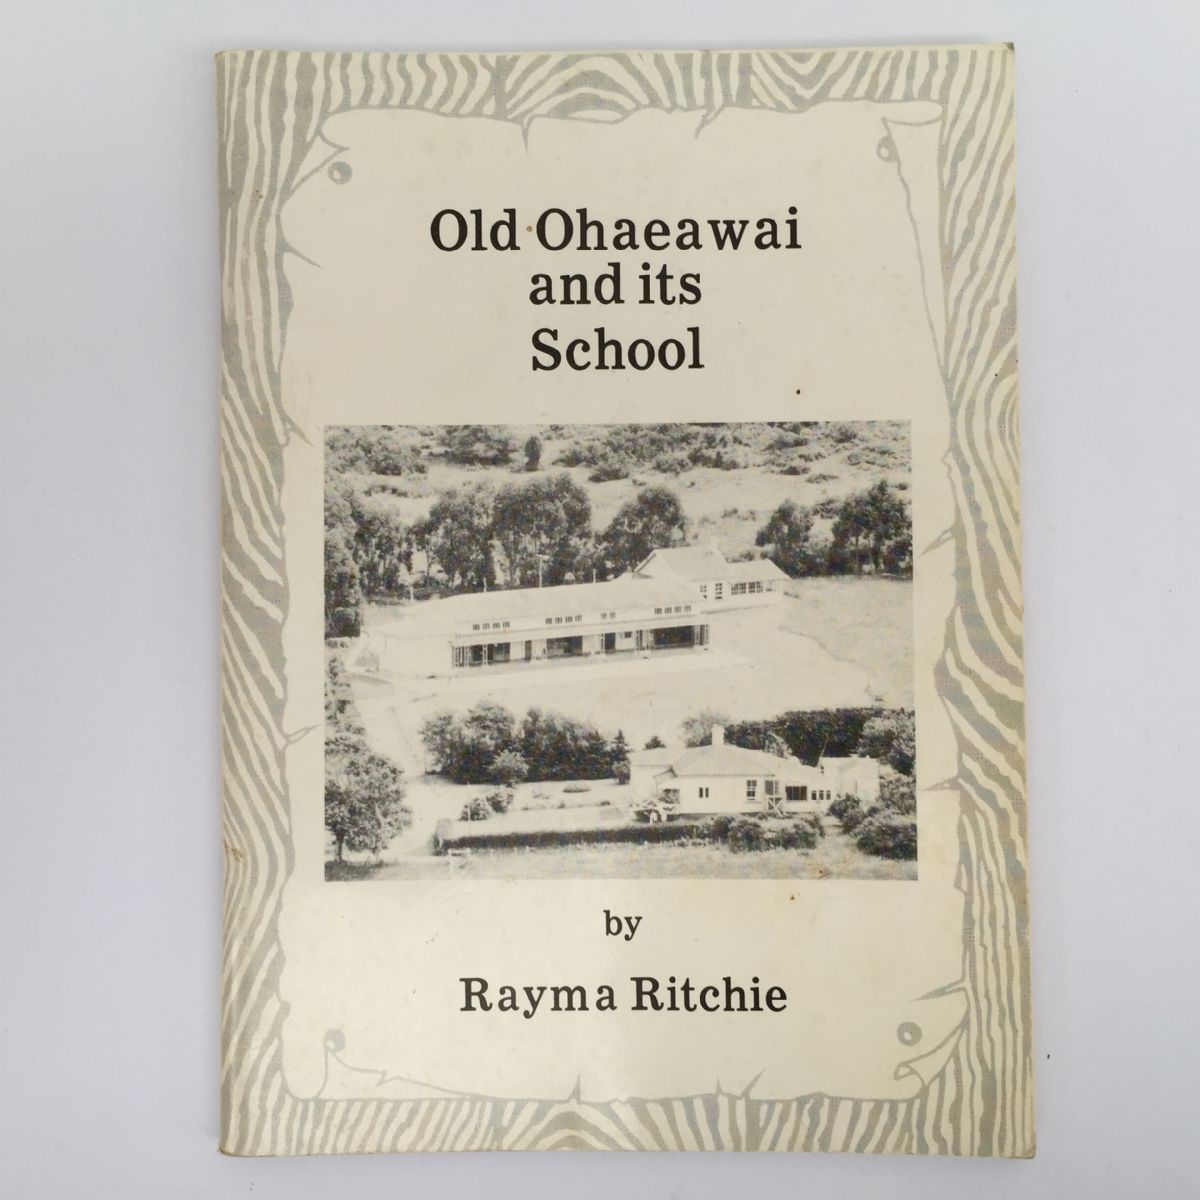 Old Ohaeawai and its School